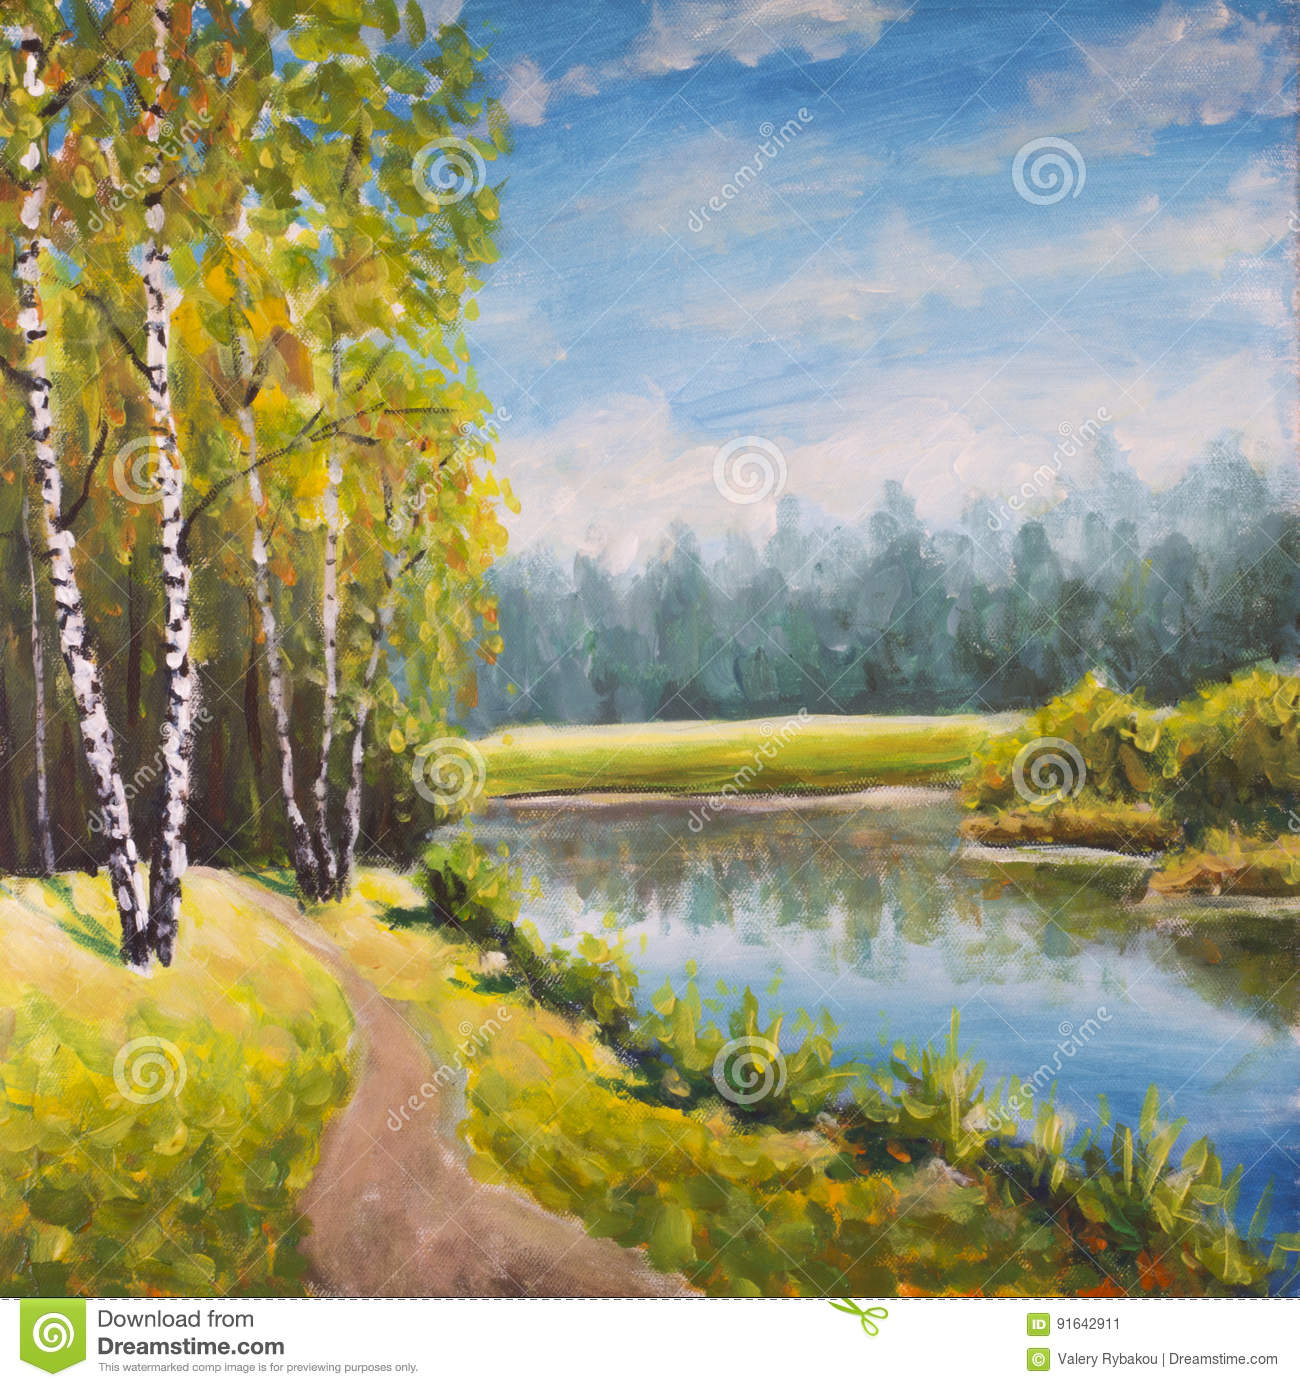 Original oil painting summer landscape, sunny nature on canvas. Beautiful far forest, rural landscape landscape. Modern impressio